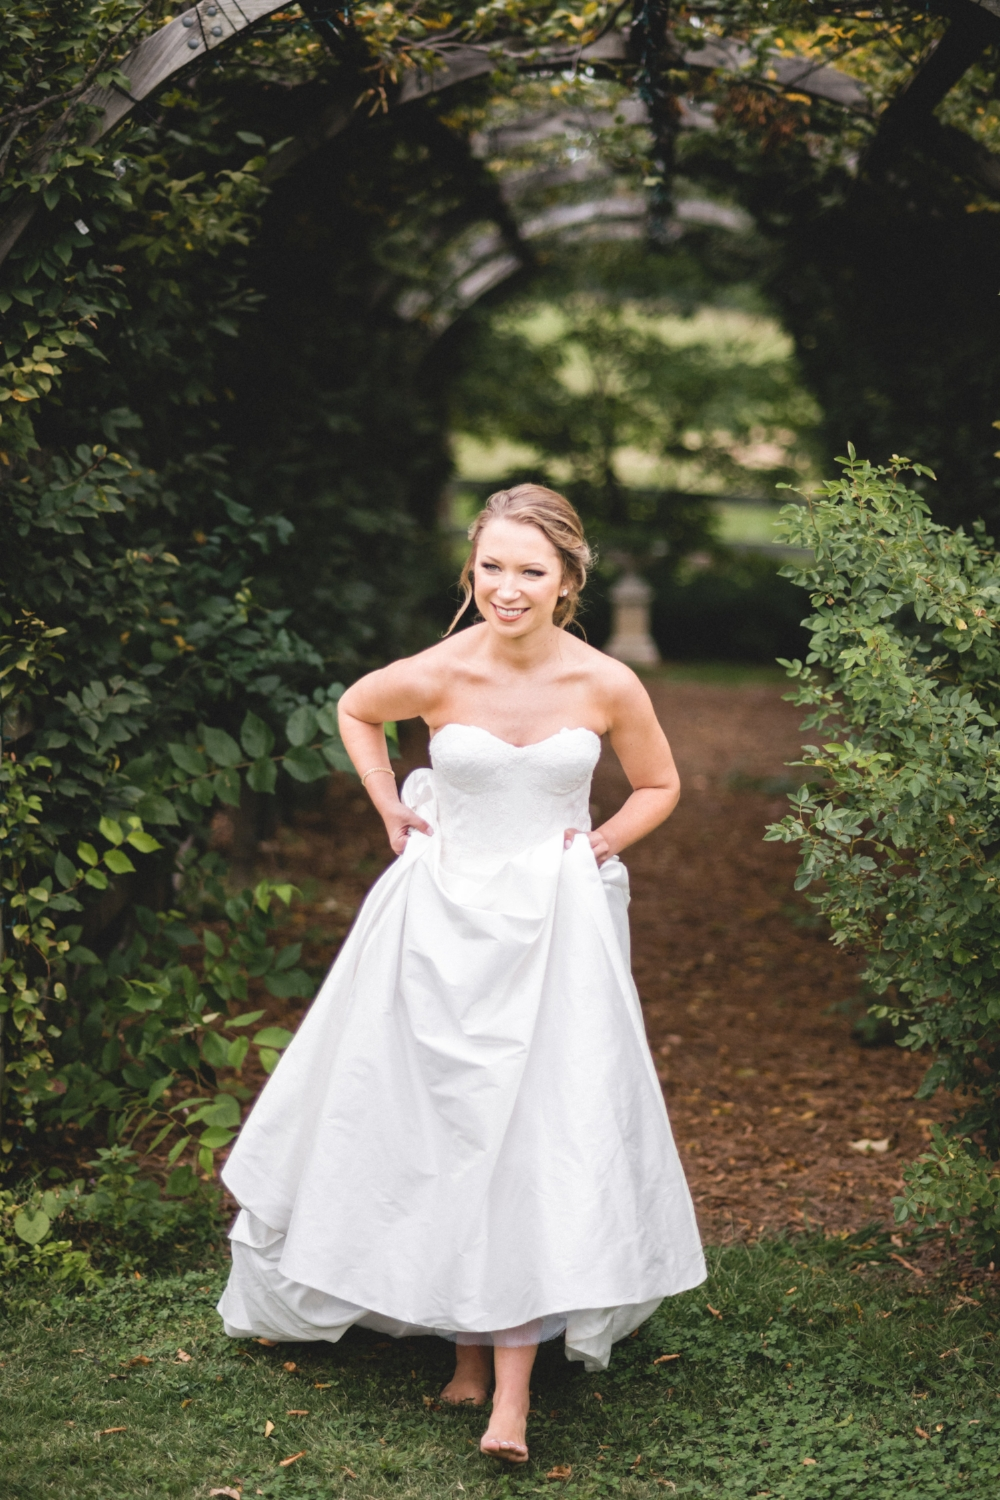 AKC-hunt-bridal-portraits-09-11-2017-062 copy.jpg